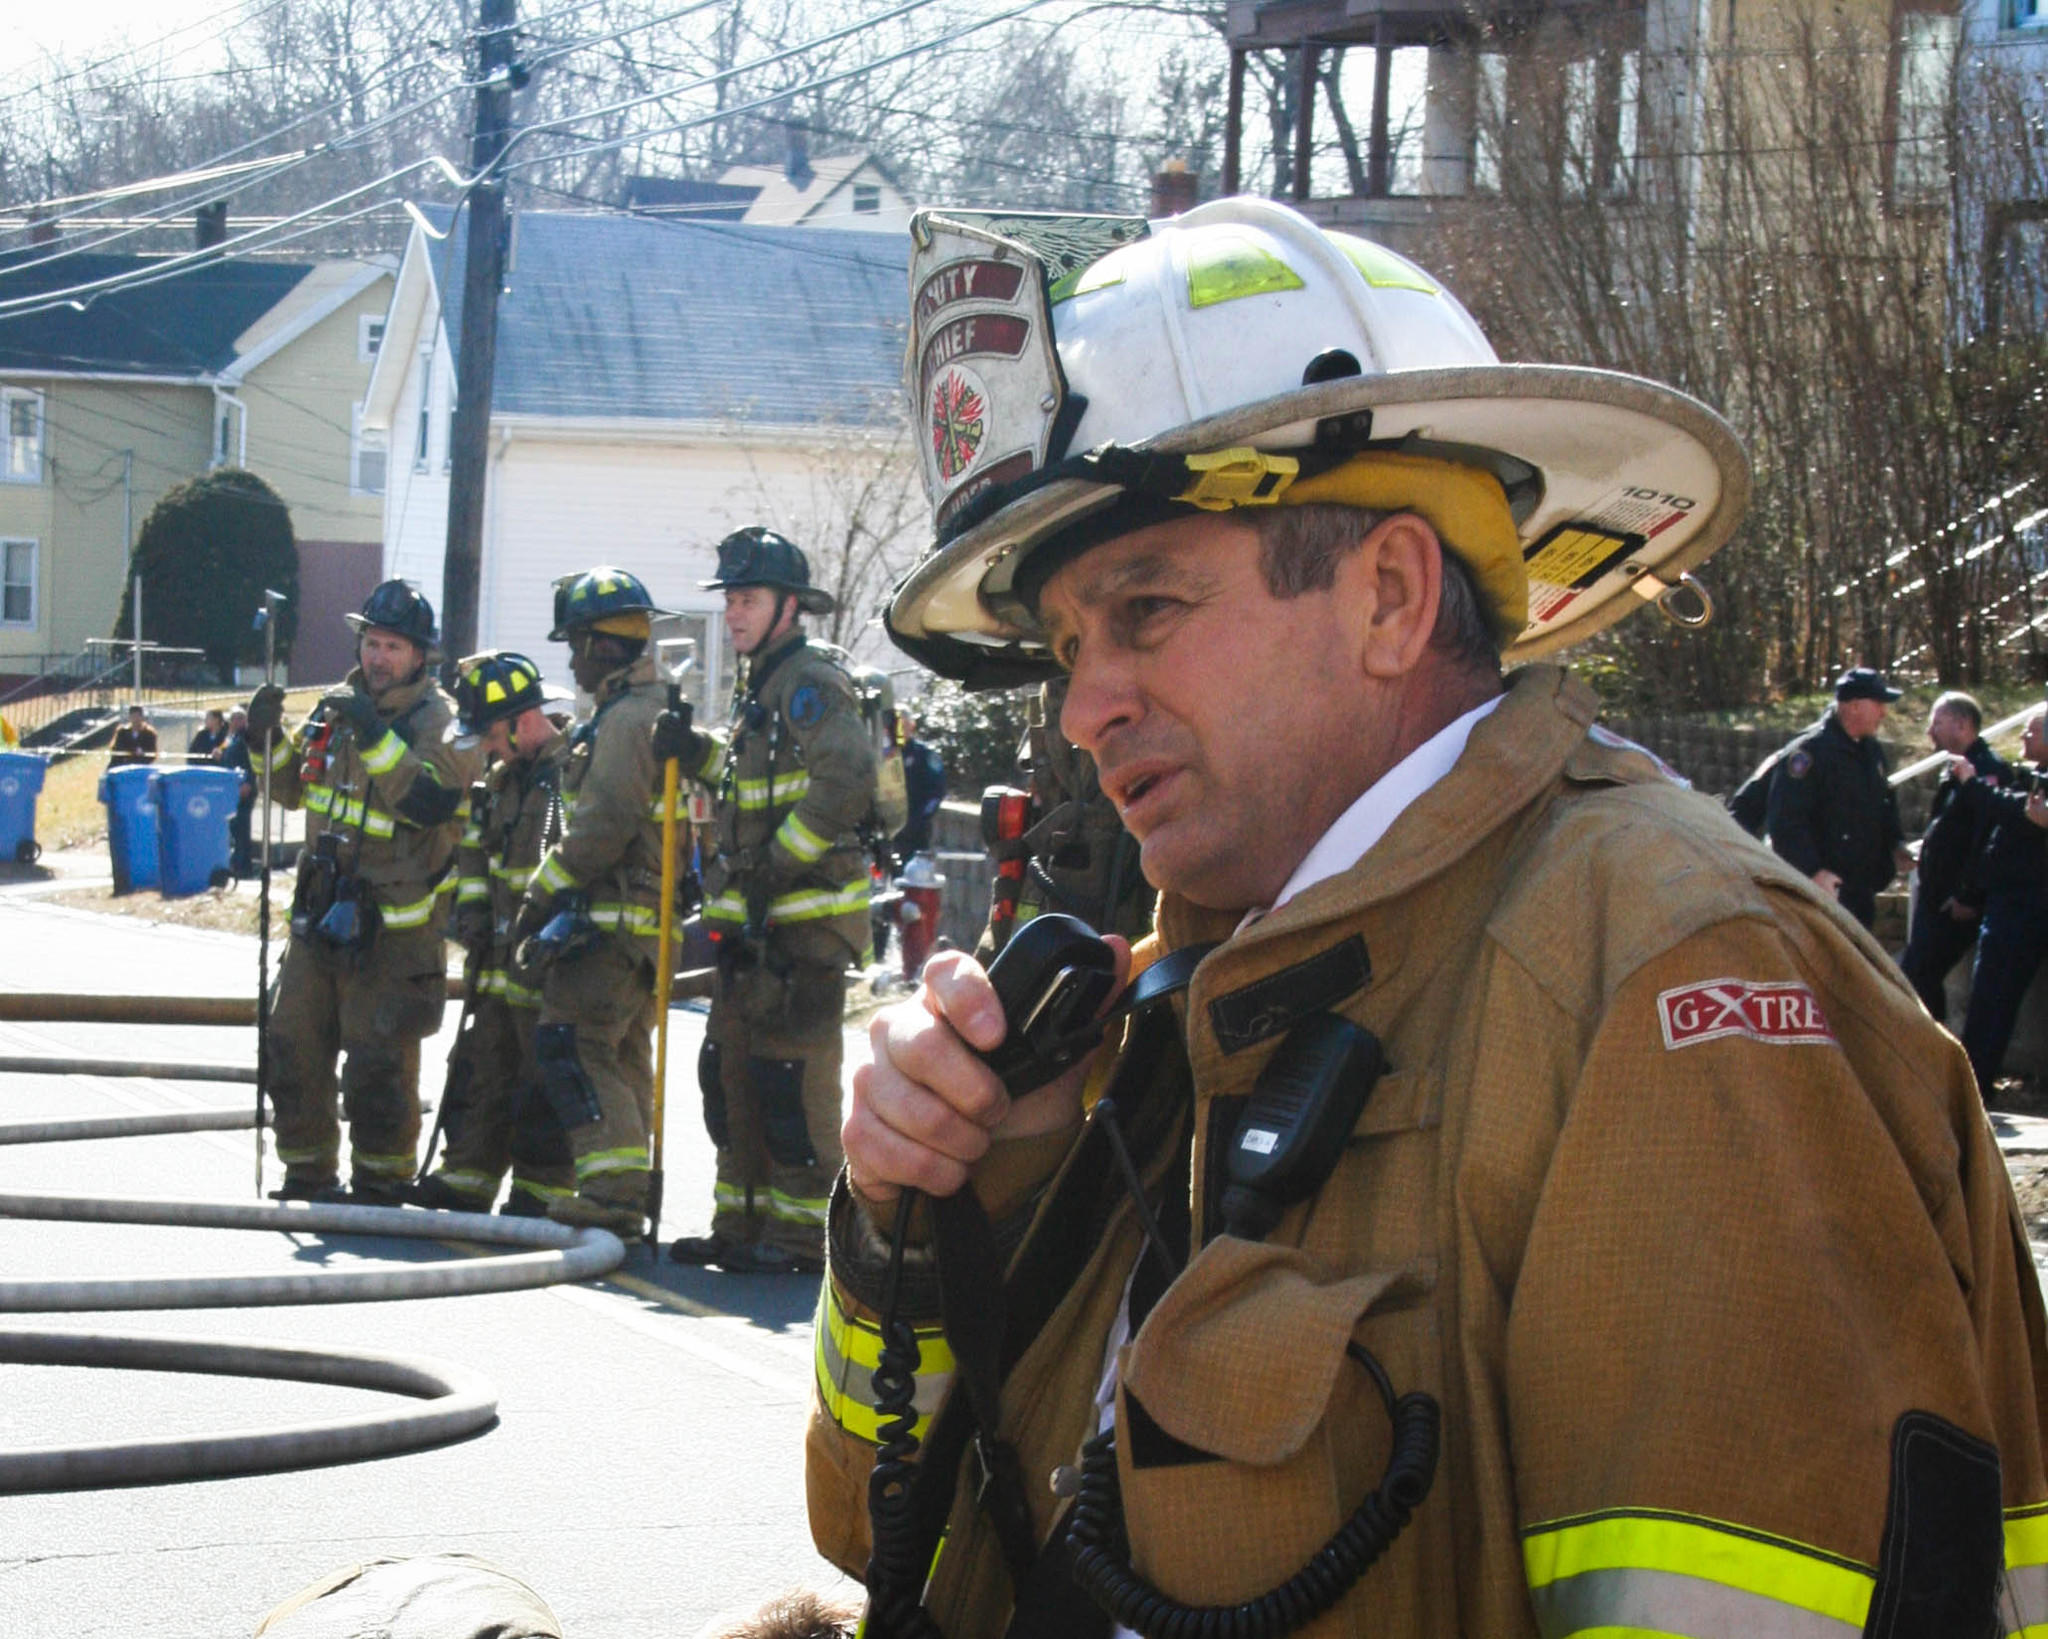 Deputy Chief David Fiori, a 36-year veteran of the New Britain Fire Department, died Monday morning after suffering a heart attack on duty Sunday night. He was 59.